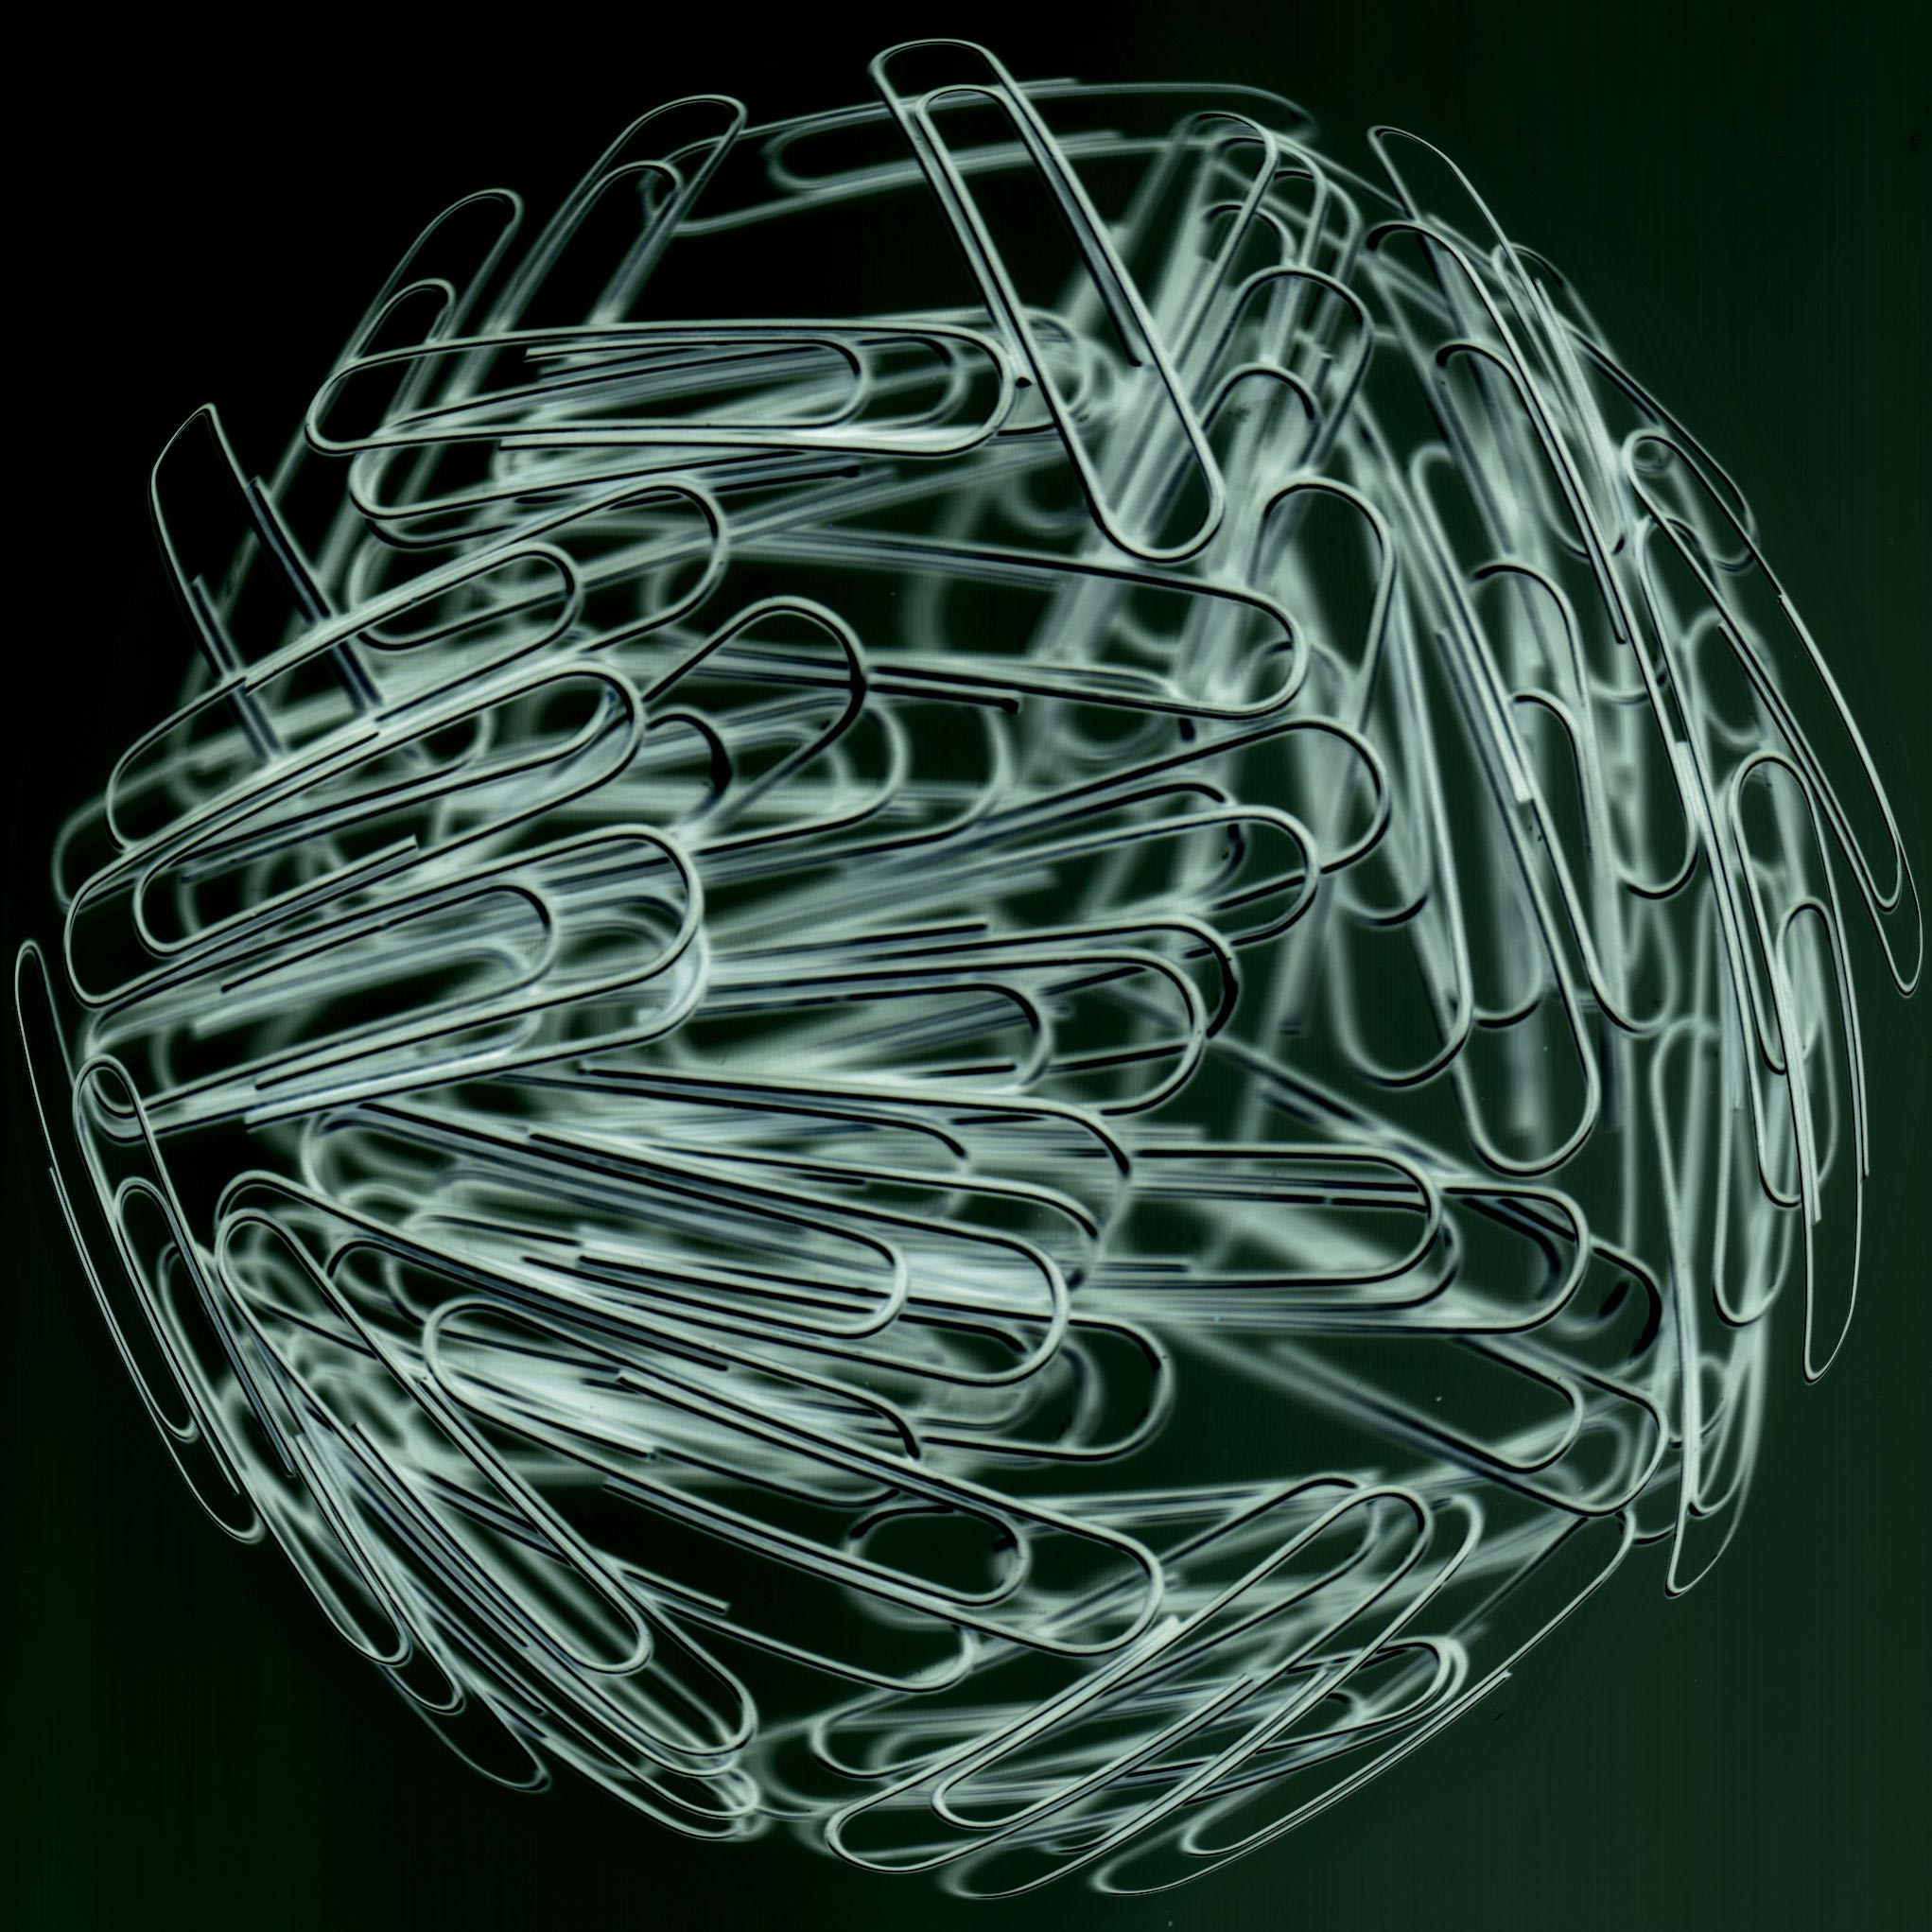 paperclips-article